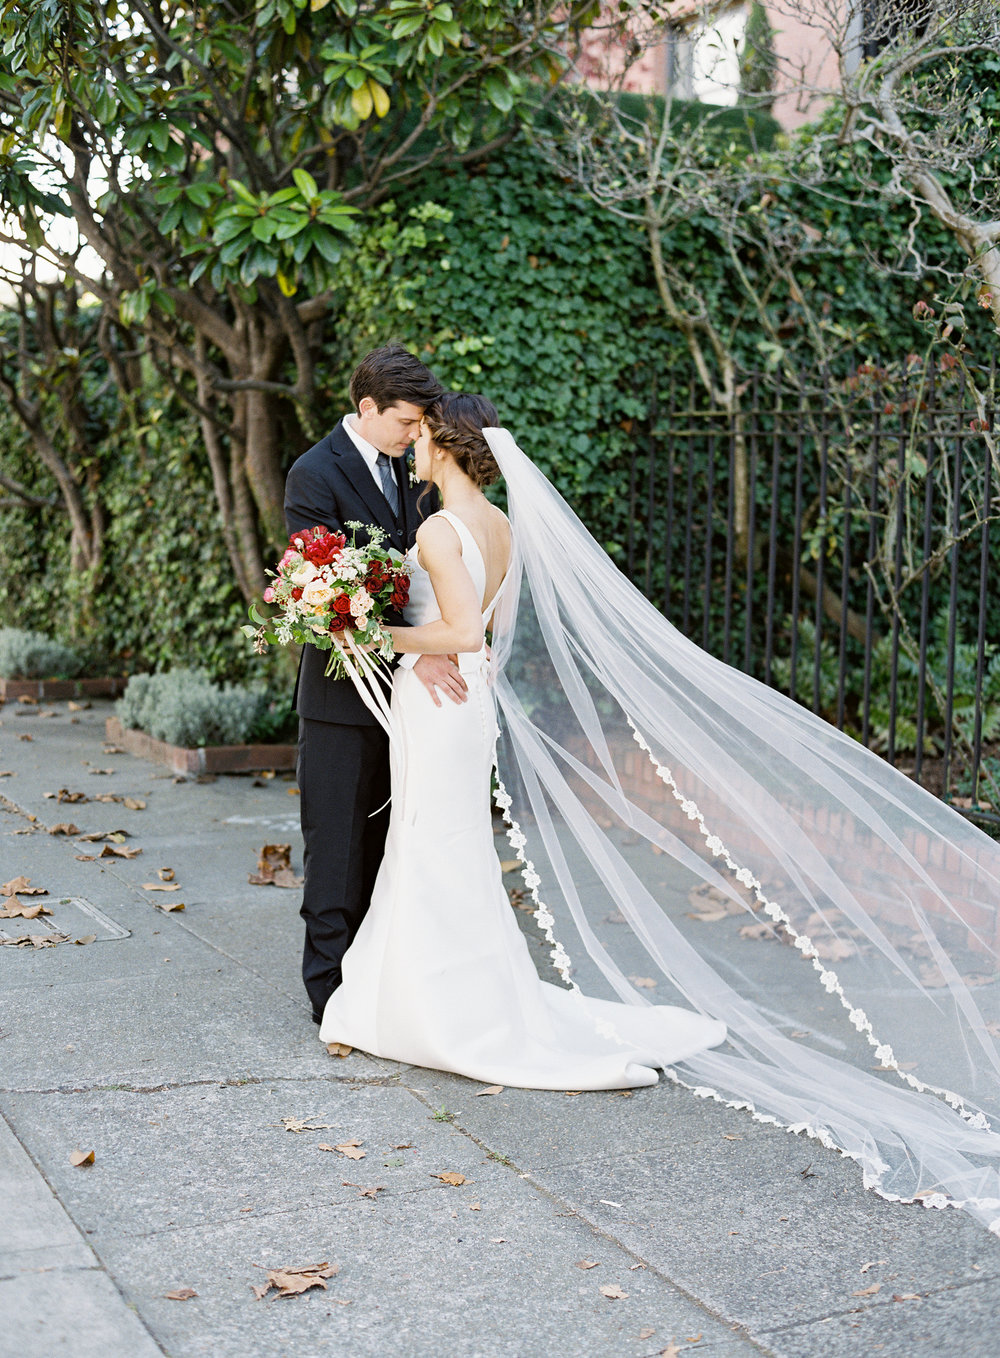 Meghan Mehan Photography - California Wedding Photographer | San Francisco City Hall Wedding 051.jpg